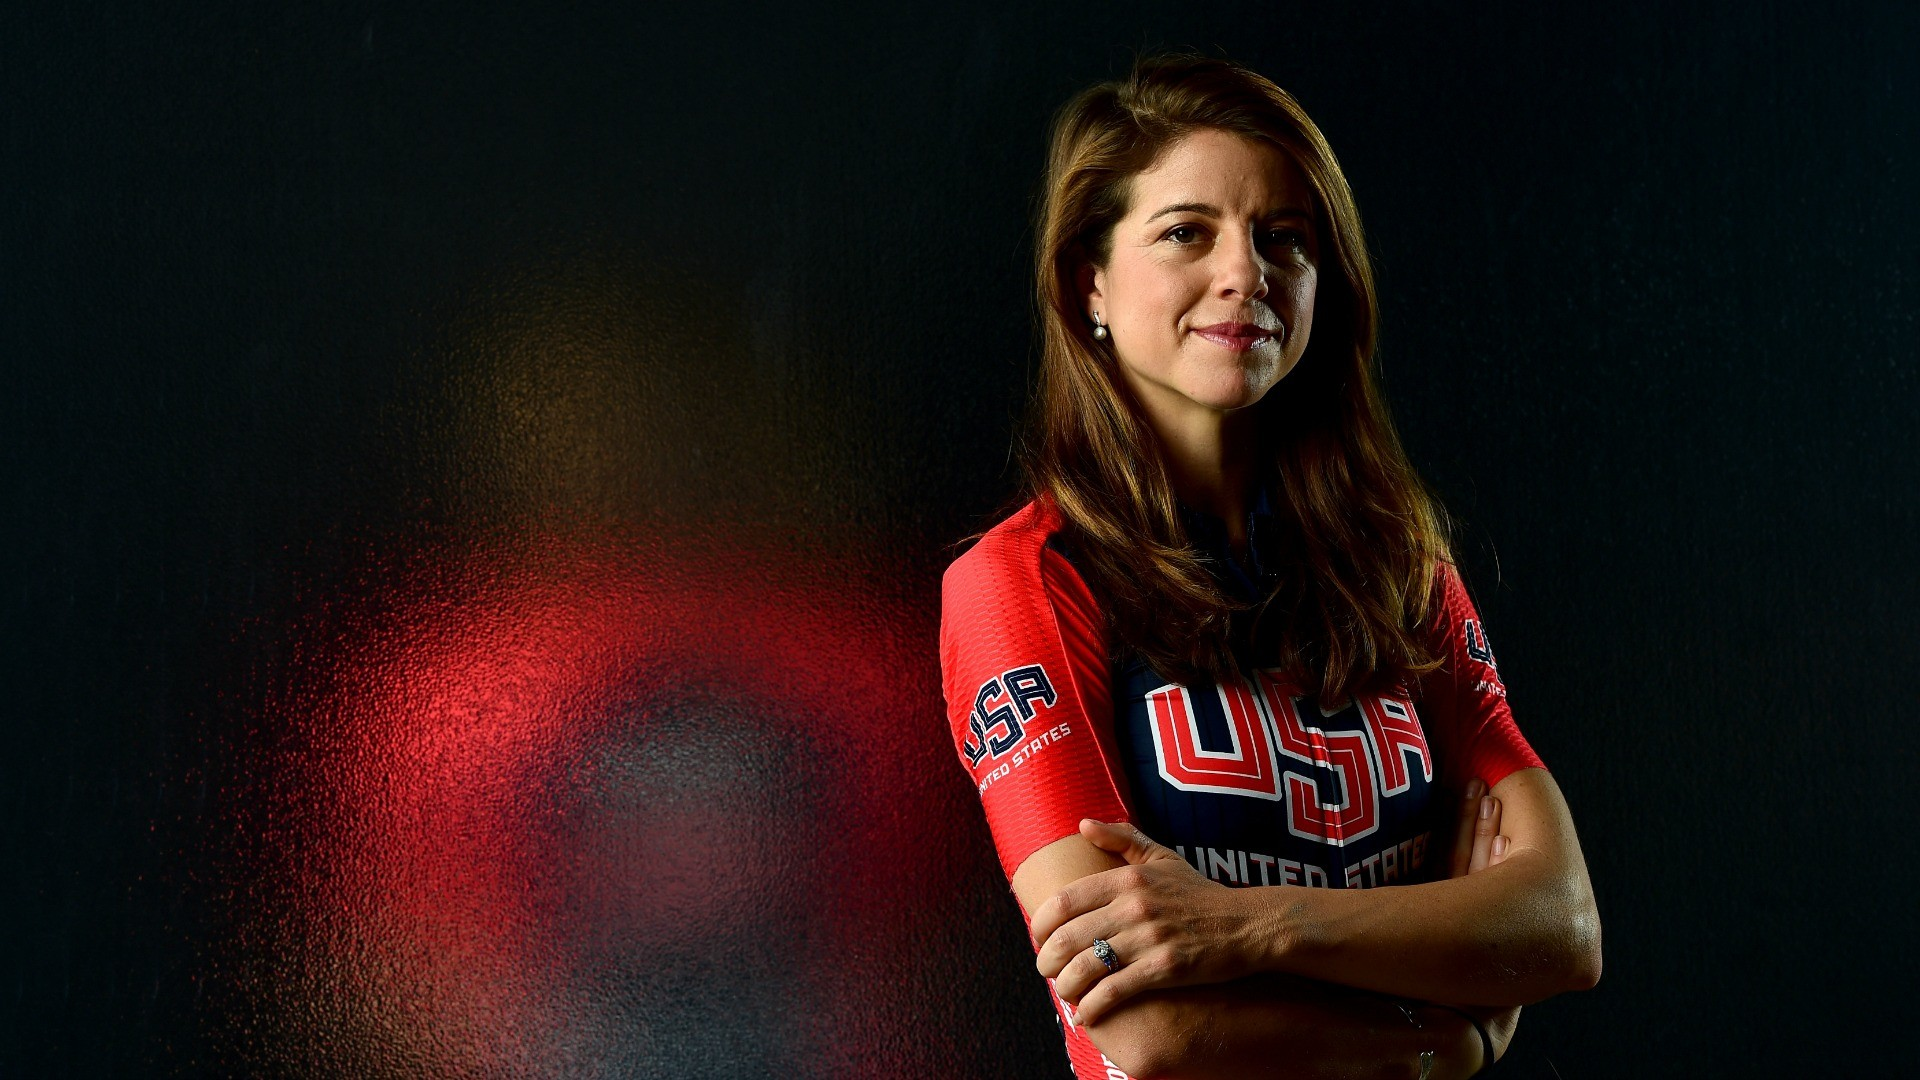 US rider Evelyn Stevens holds the current women's hour record